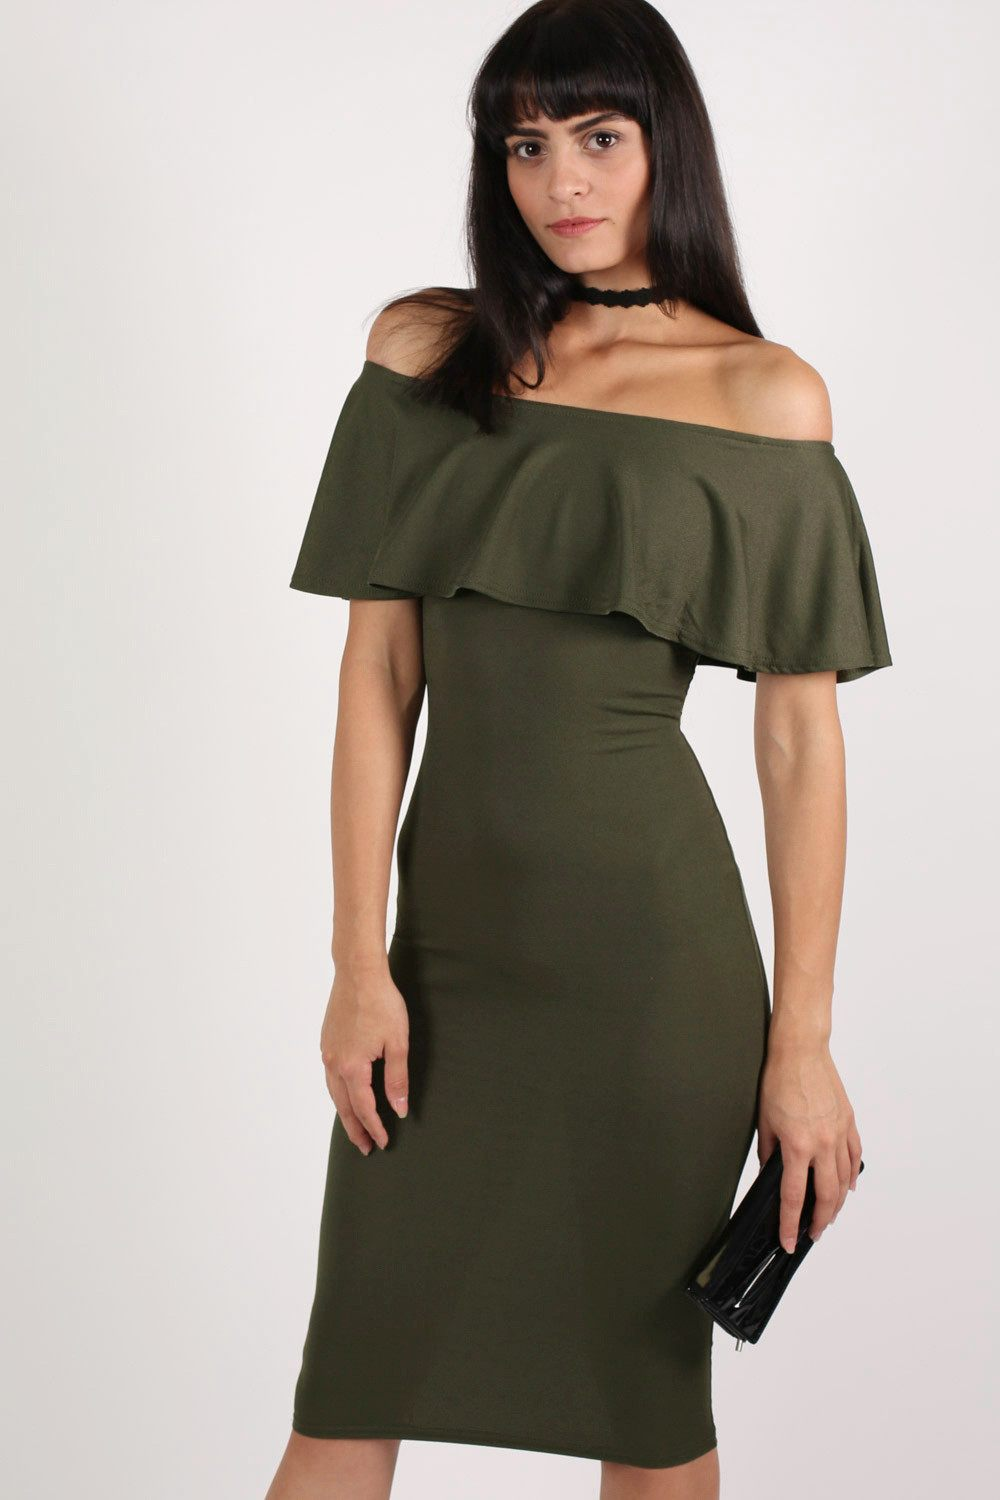 Off Shoulder Deep Frill Bodycon Midi Dress in Khaki Green MODEL FRONT